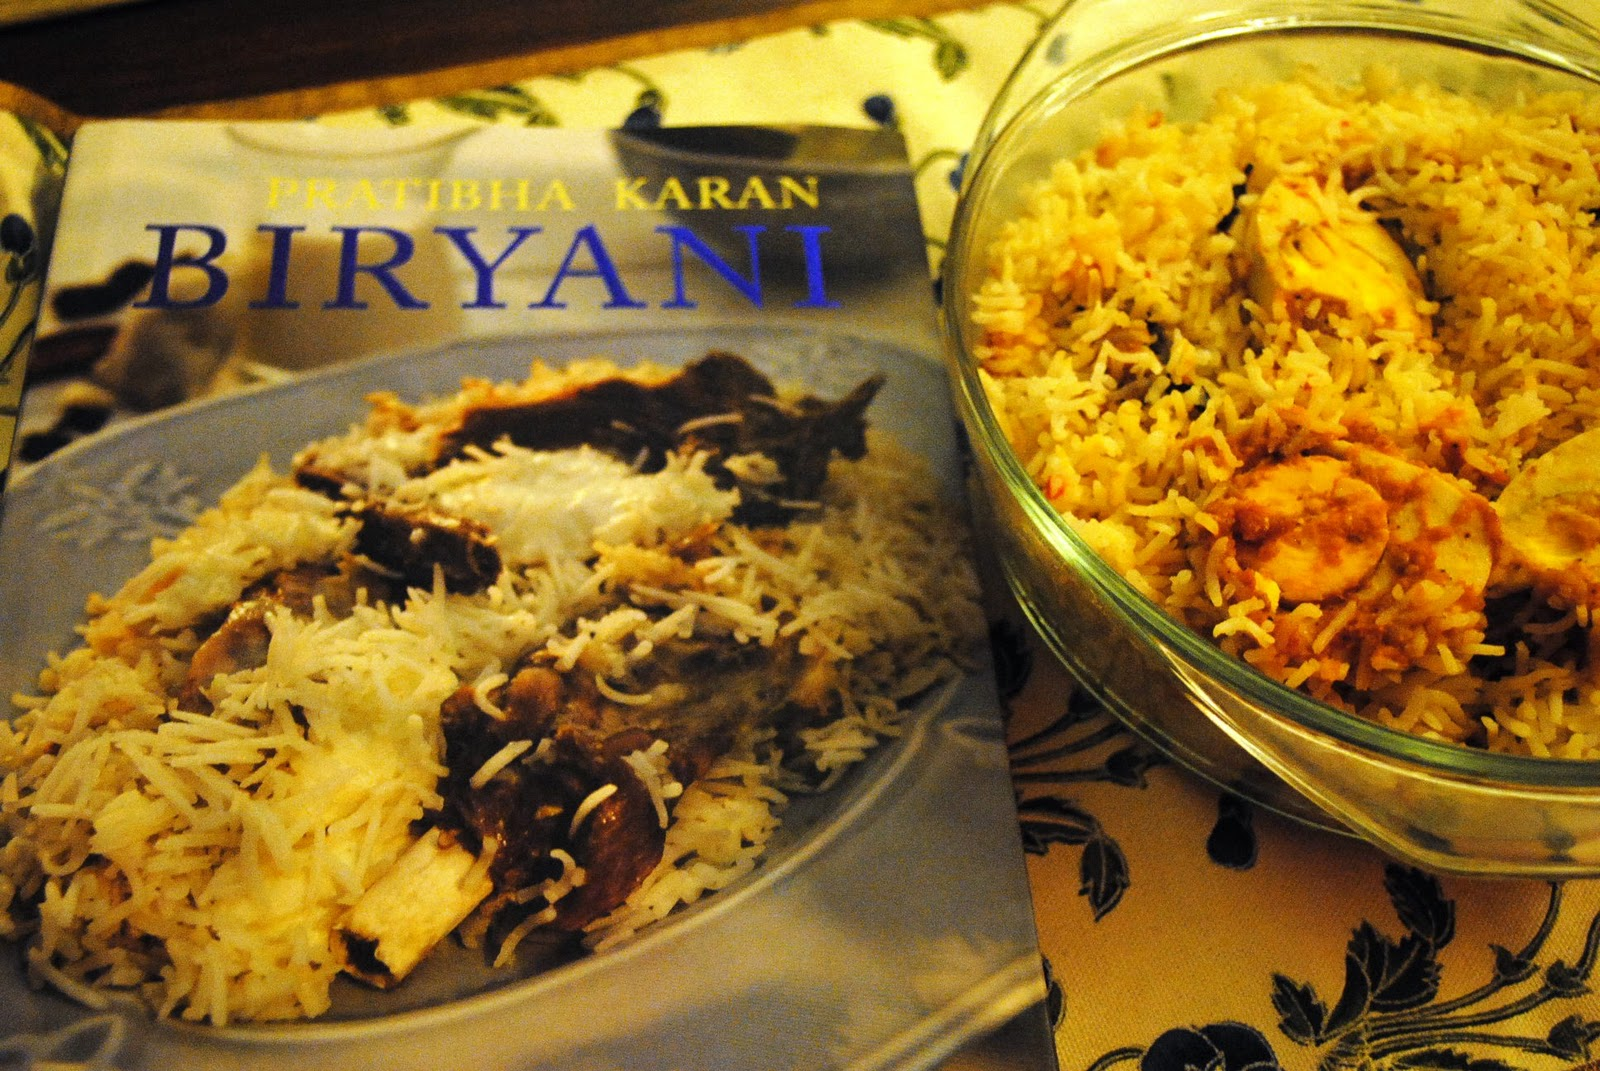 Peppermill tamil egg biryani pratibha karan but an egg biryani made at home can taste very delicious and is an easy alternative to mutton or chicken if you dont have all the ingredients or dont forumfinder Gallery